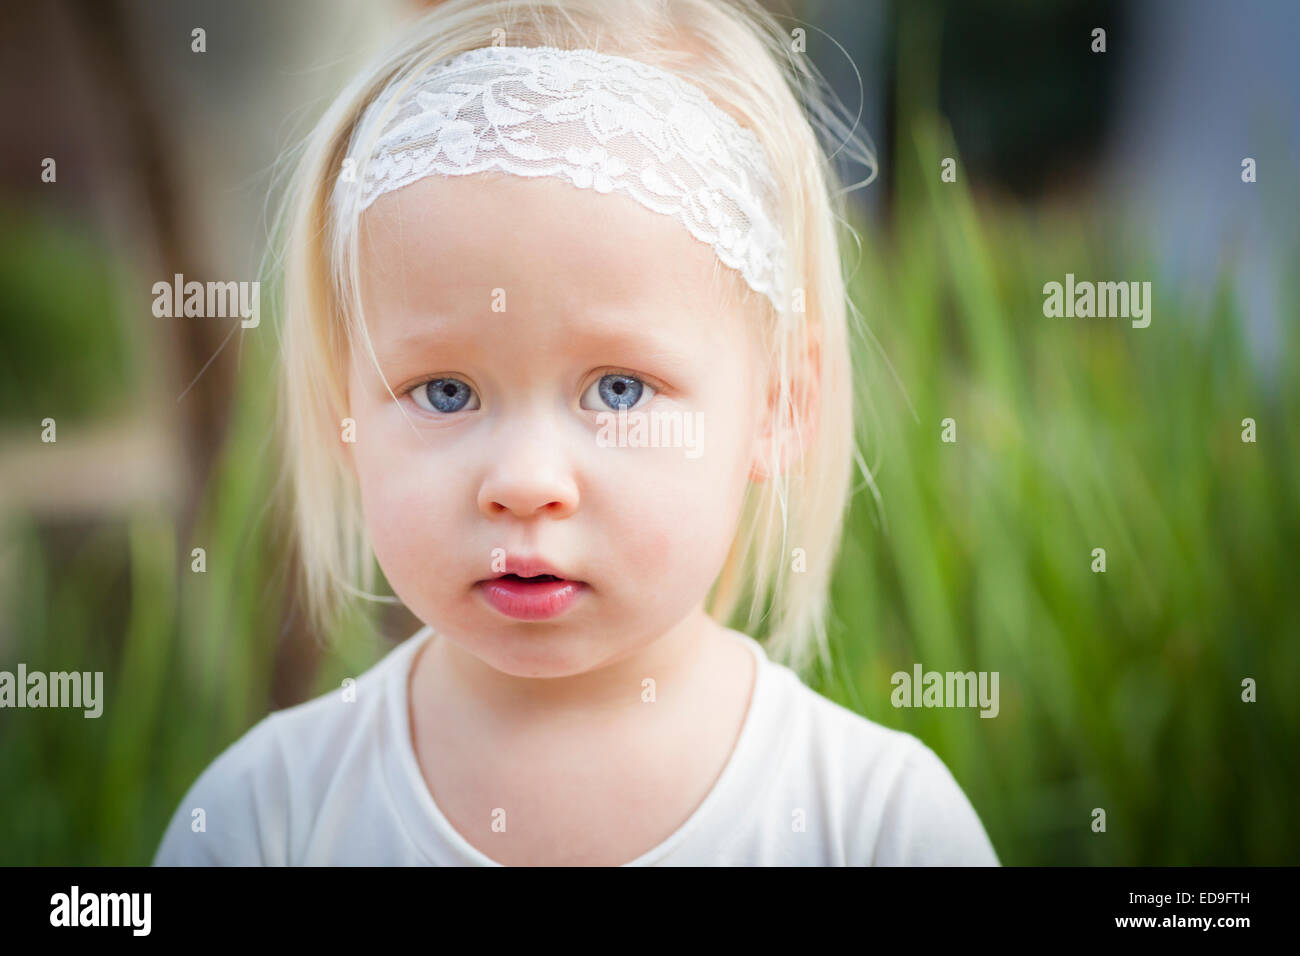 Adorable Little Girl with Blue Eyes Portrait Outside. - Stock Image